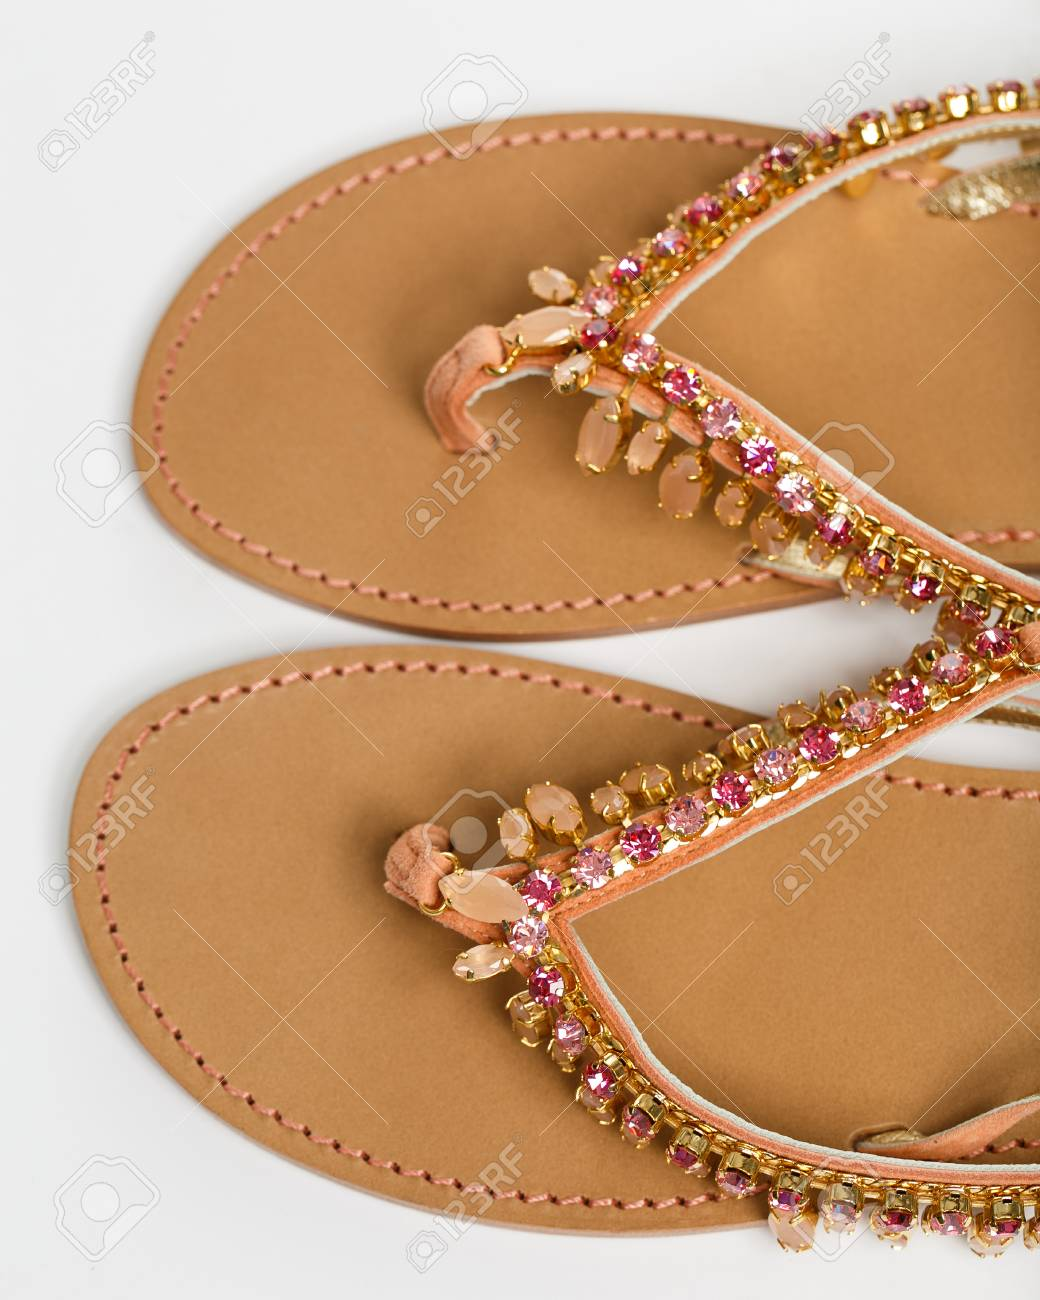 bf707e31fe4 The woman summer sandals isolated on a white background Stock Photo -  40268036